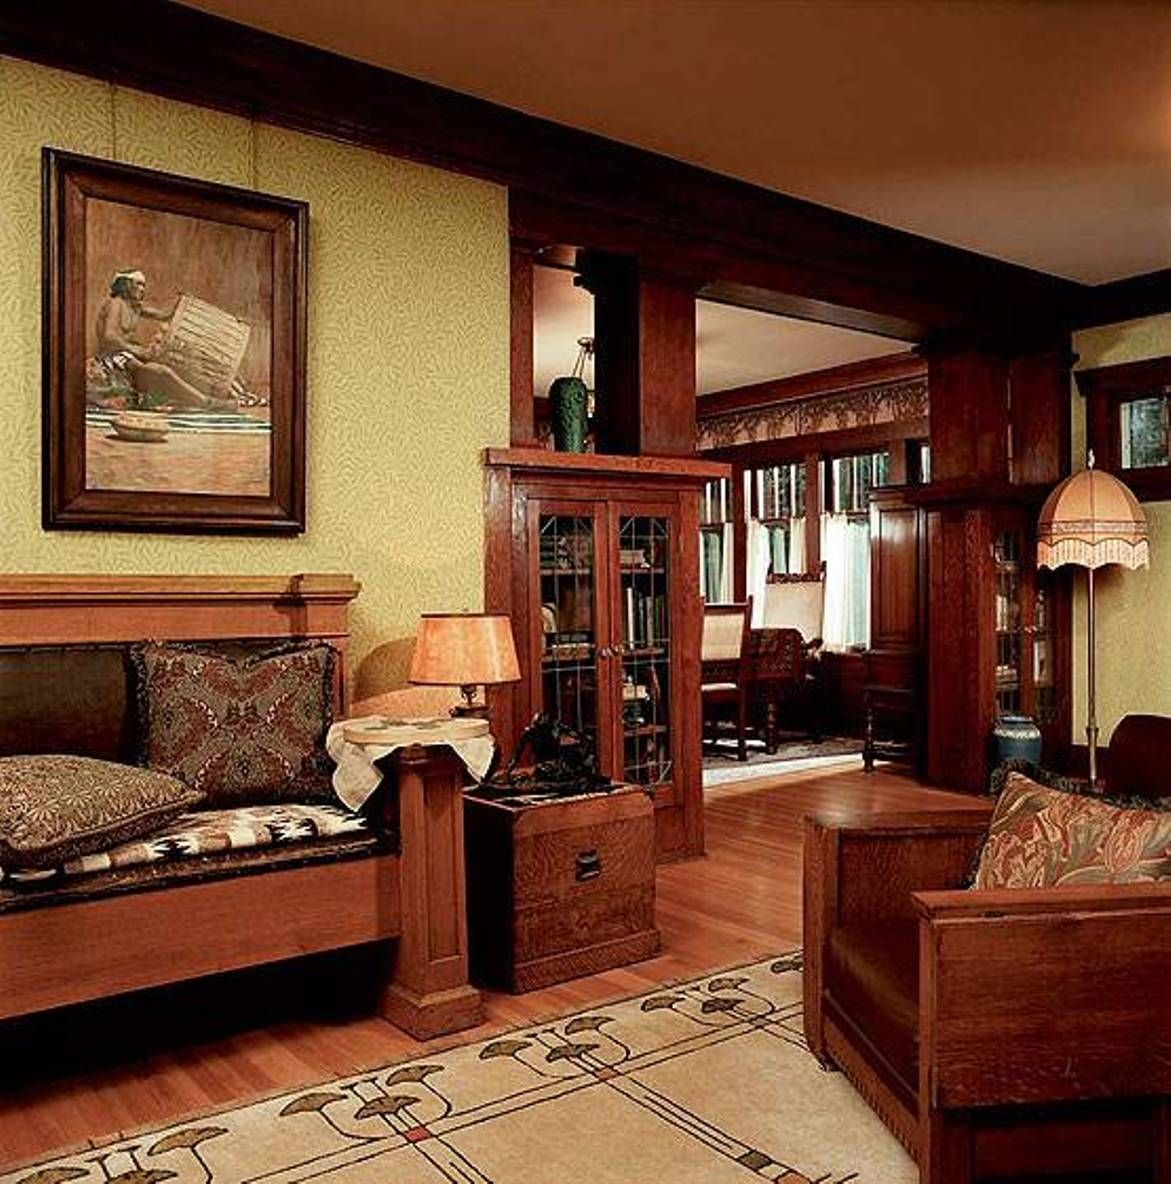 Home Design And Decor Craftsman Interior Decorating Styles Craftsman Interior Decorating Craftsman Bungalow Interior Craftsman Interior Bungalow Interiors